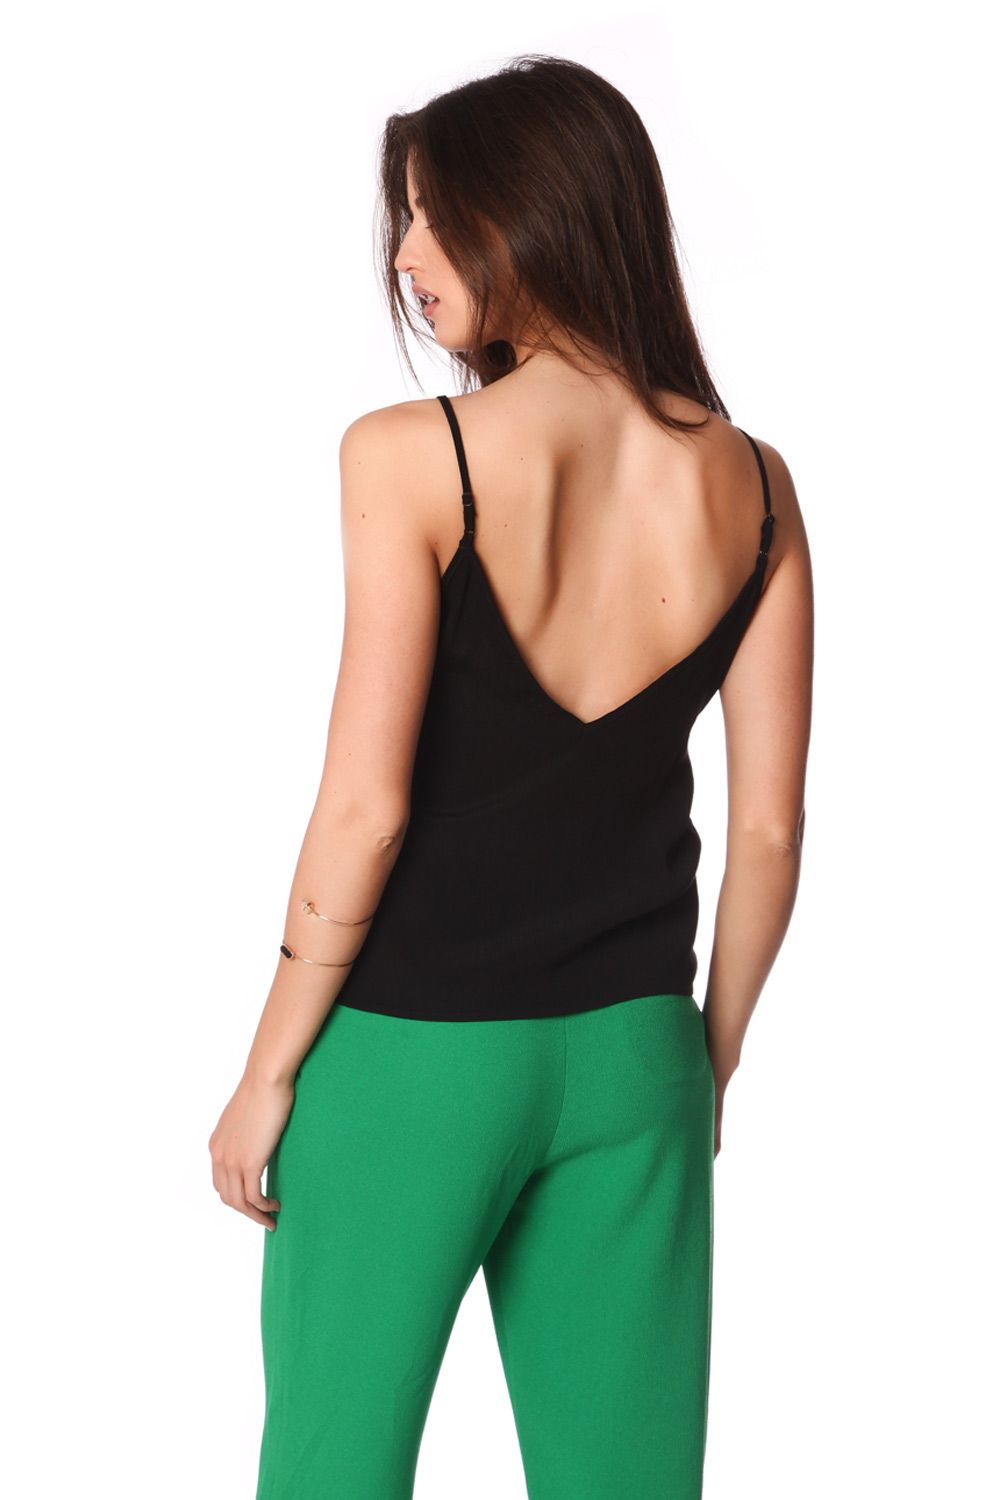 Black Cami Top With Multi Color Cage Detail-Women - Apparel - Shirts - Blouses-Product Details Black cami top with cage detail made from a light woven fabric. V-neck with multi colors and adjustable straps. Deep V-neck on the back side and a loose fit. Cute top for the daytime example!-Keyomi-Sook